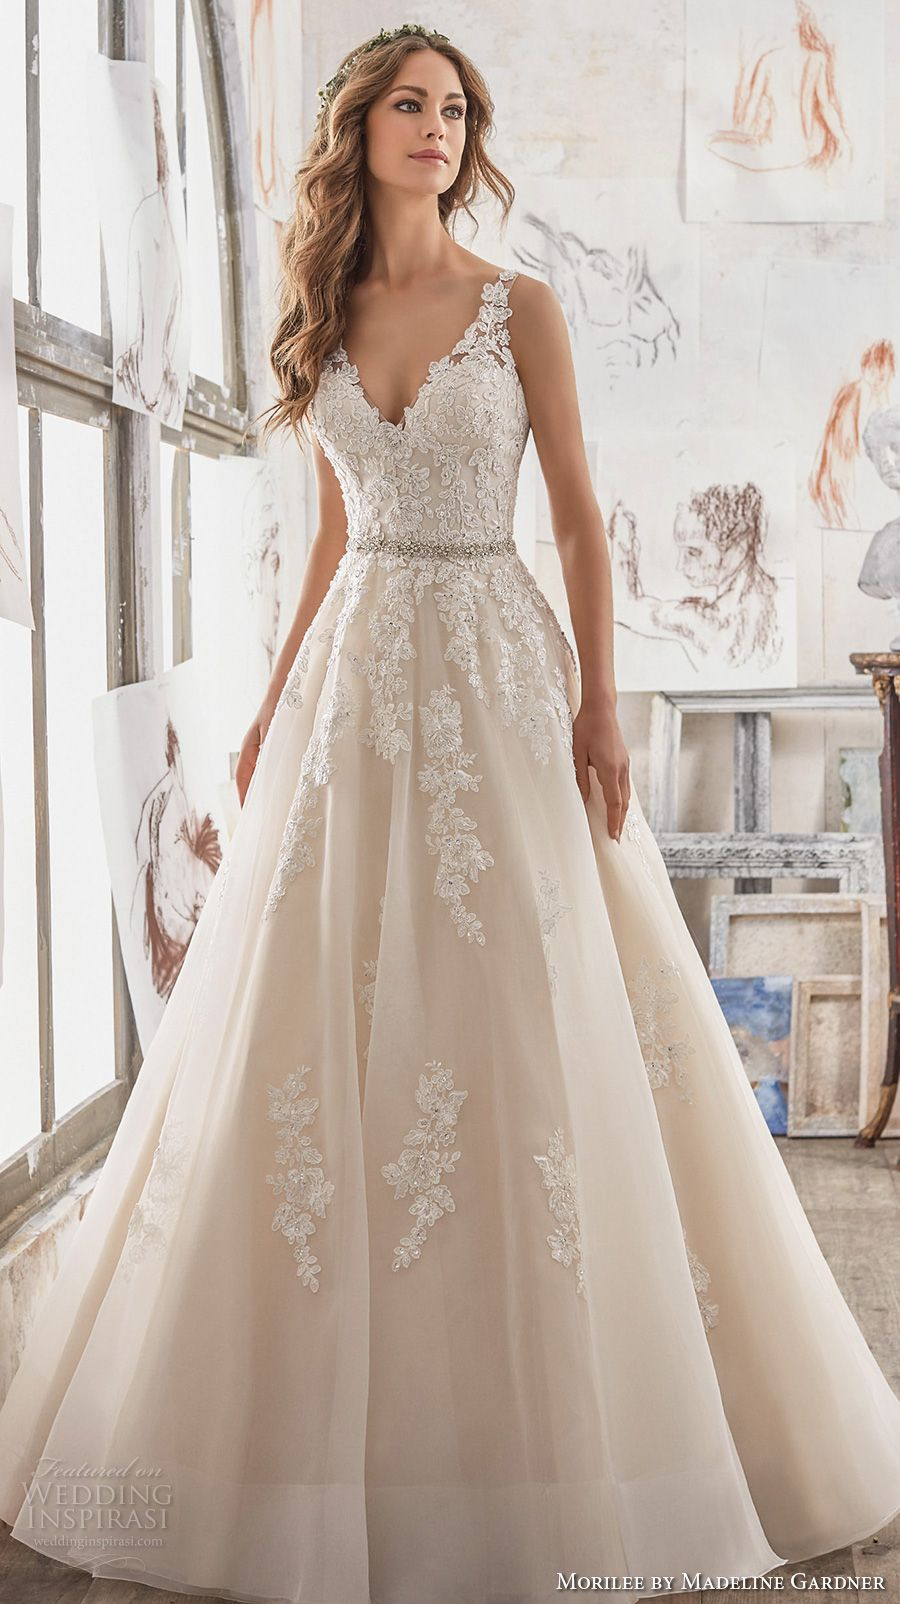 Morilee By Madeline Gardner Spring 2017 Wedding Dresses Blu Collection